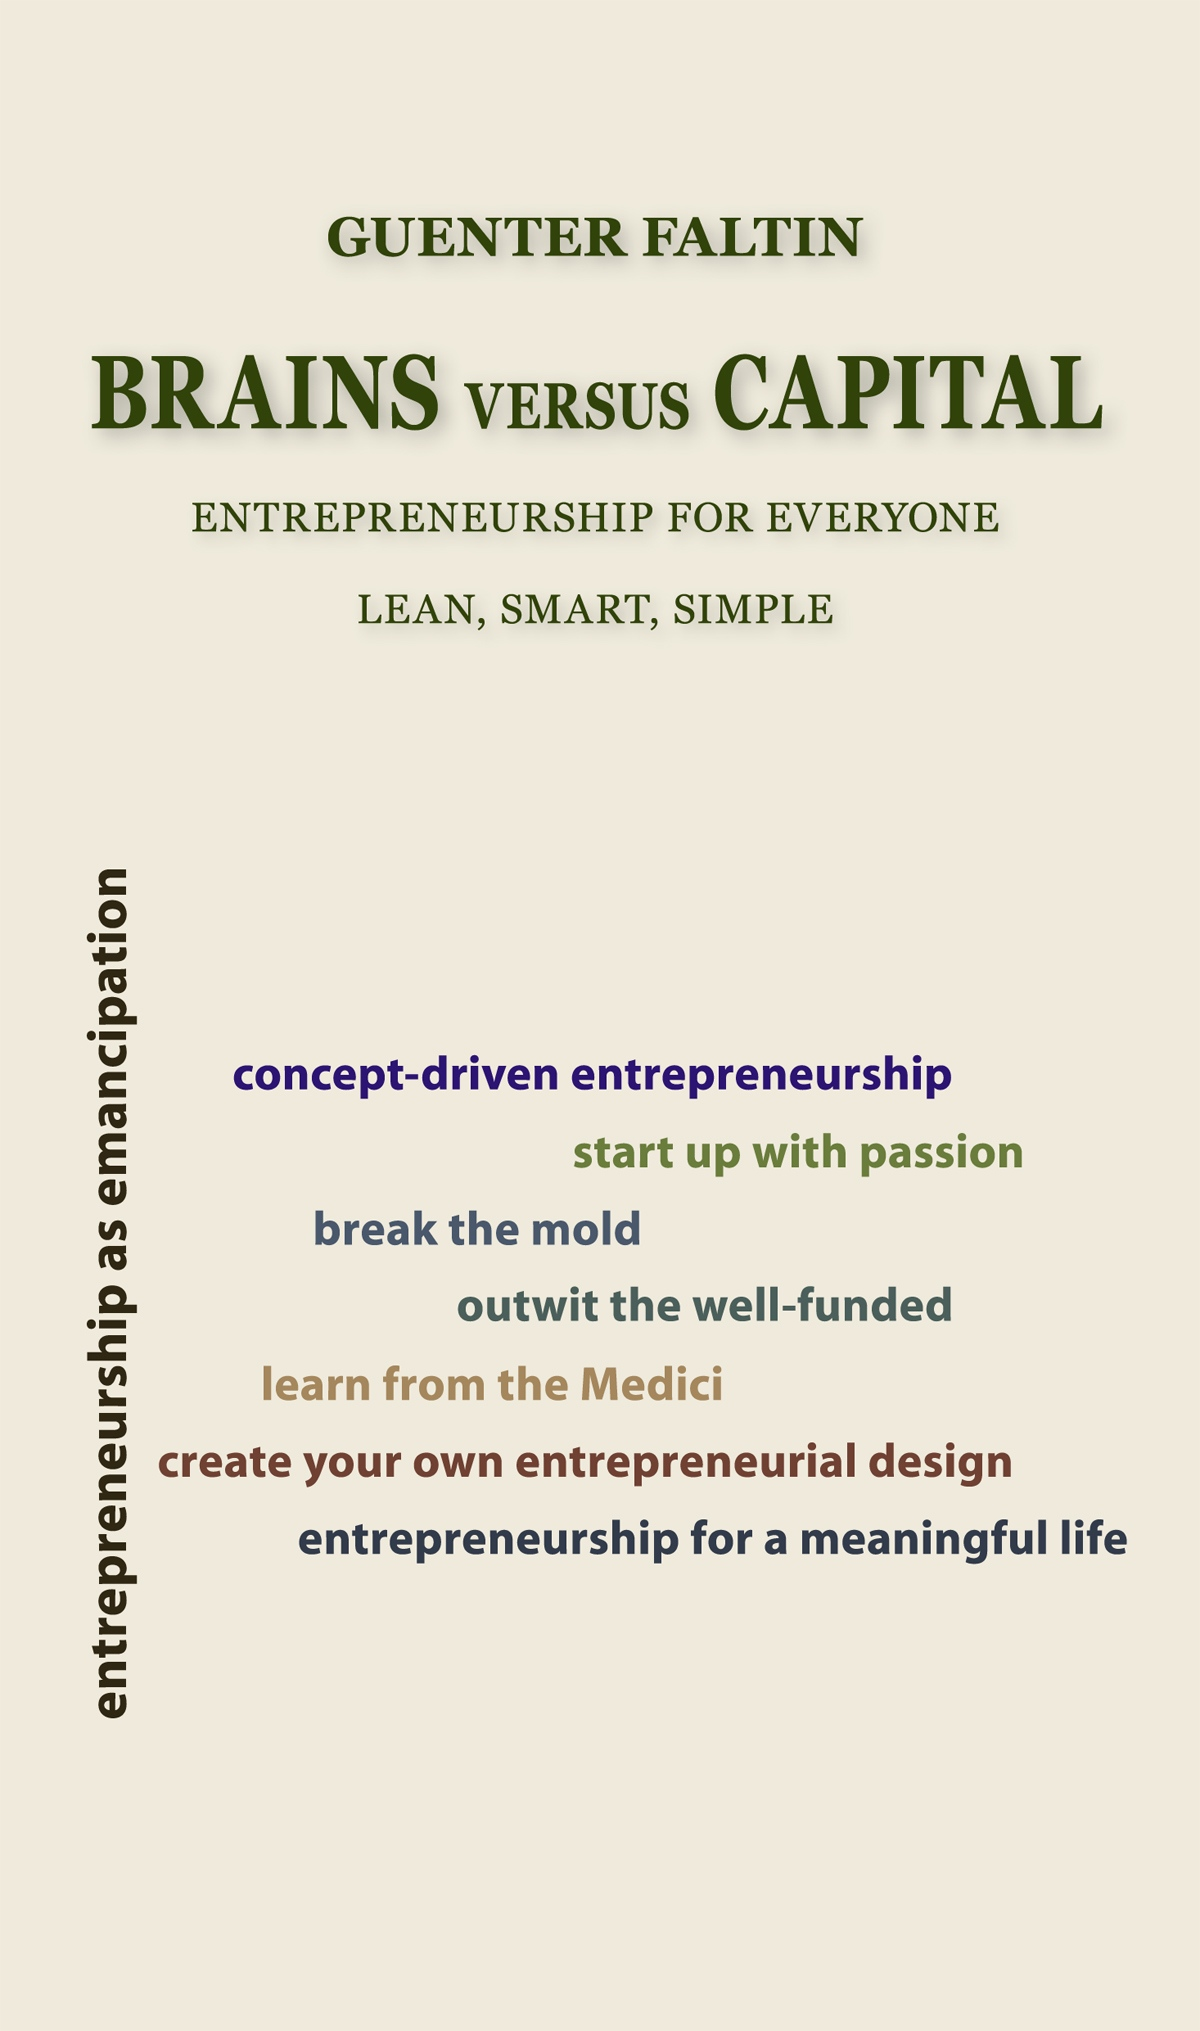 Brains versus Capital: Entrepreneurship for Everyone - Lean, Smart, Simple